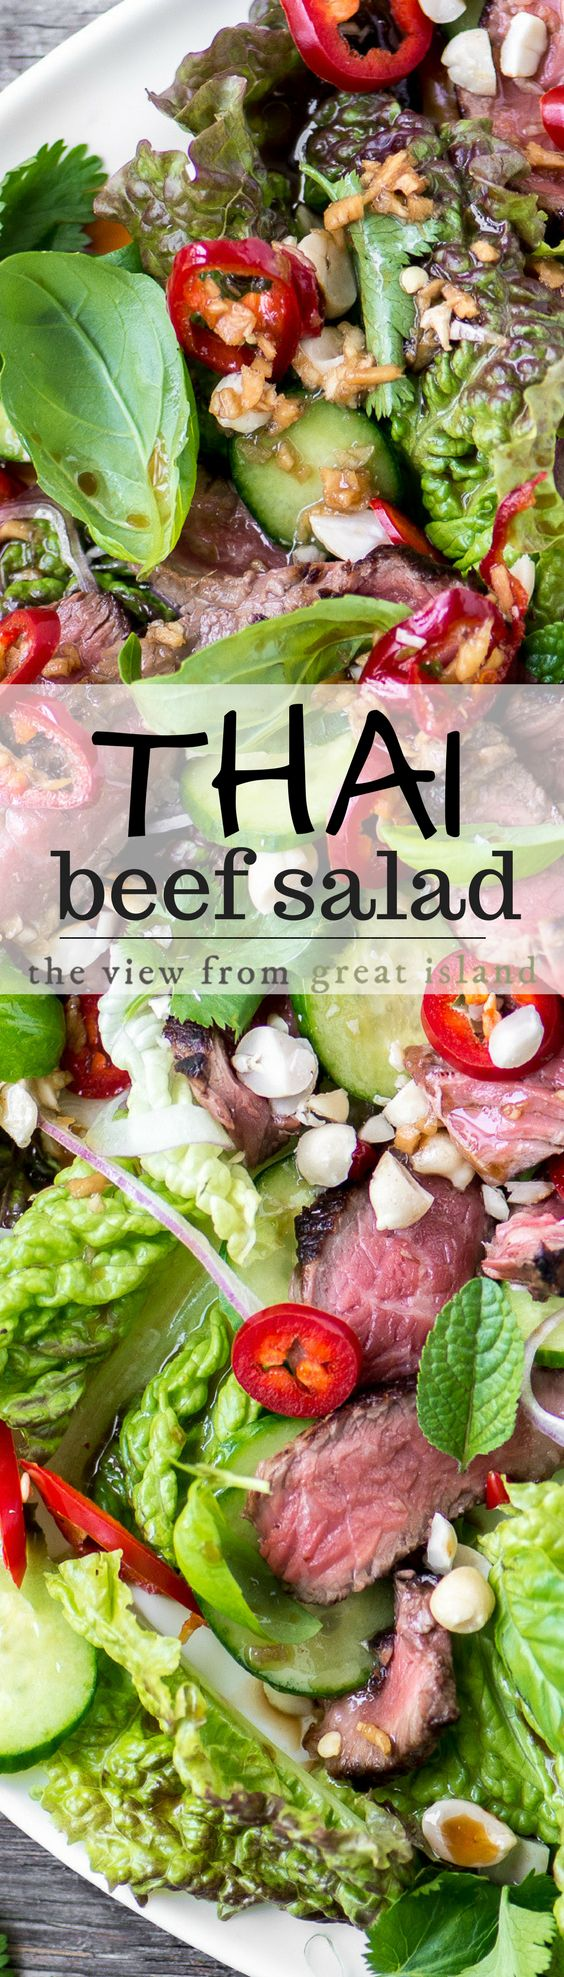 Thai Beef Salad ~ it's in a league all by itself, with ribbons of rare steak, tons of fresh herbs like basil, mint, and cilantro, feathery slices of red onion, crunchy cukes, hot peppers, and a tangy garlic ginger dressing ~ can you resist?